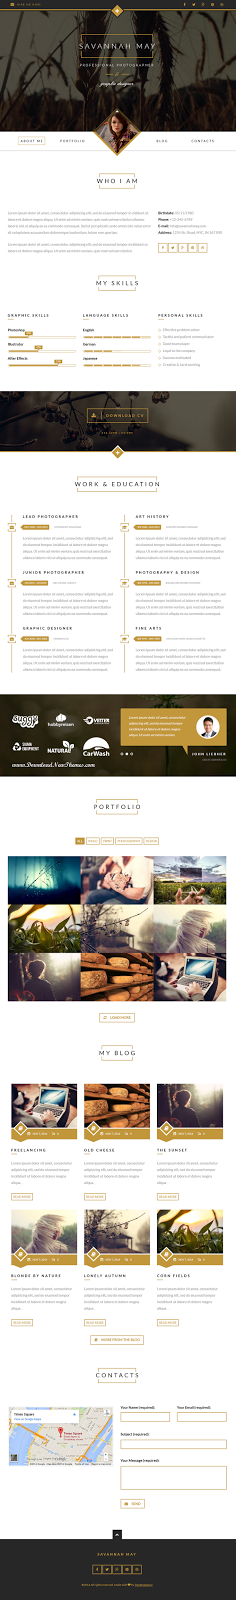 WordPress vCard template